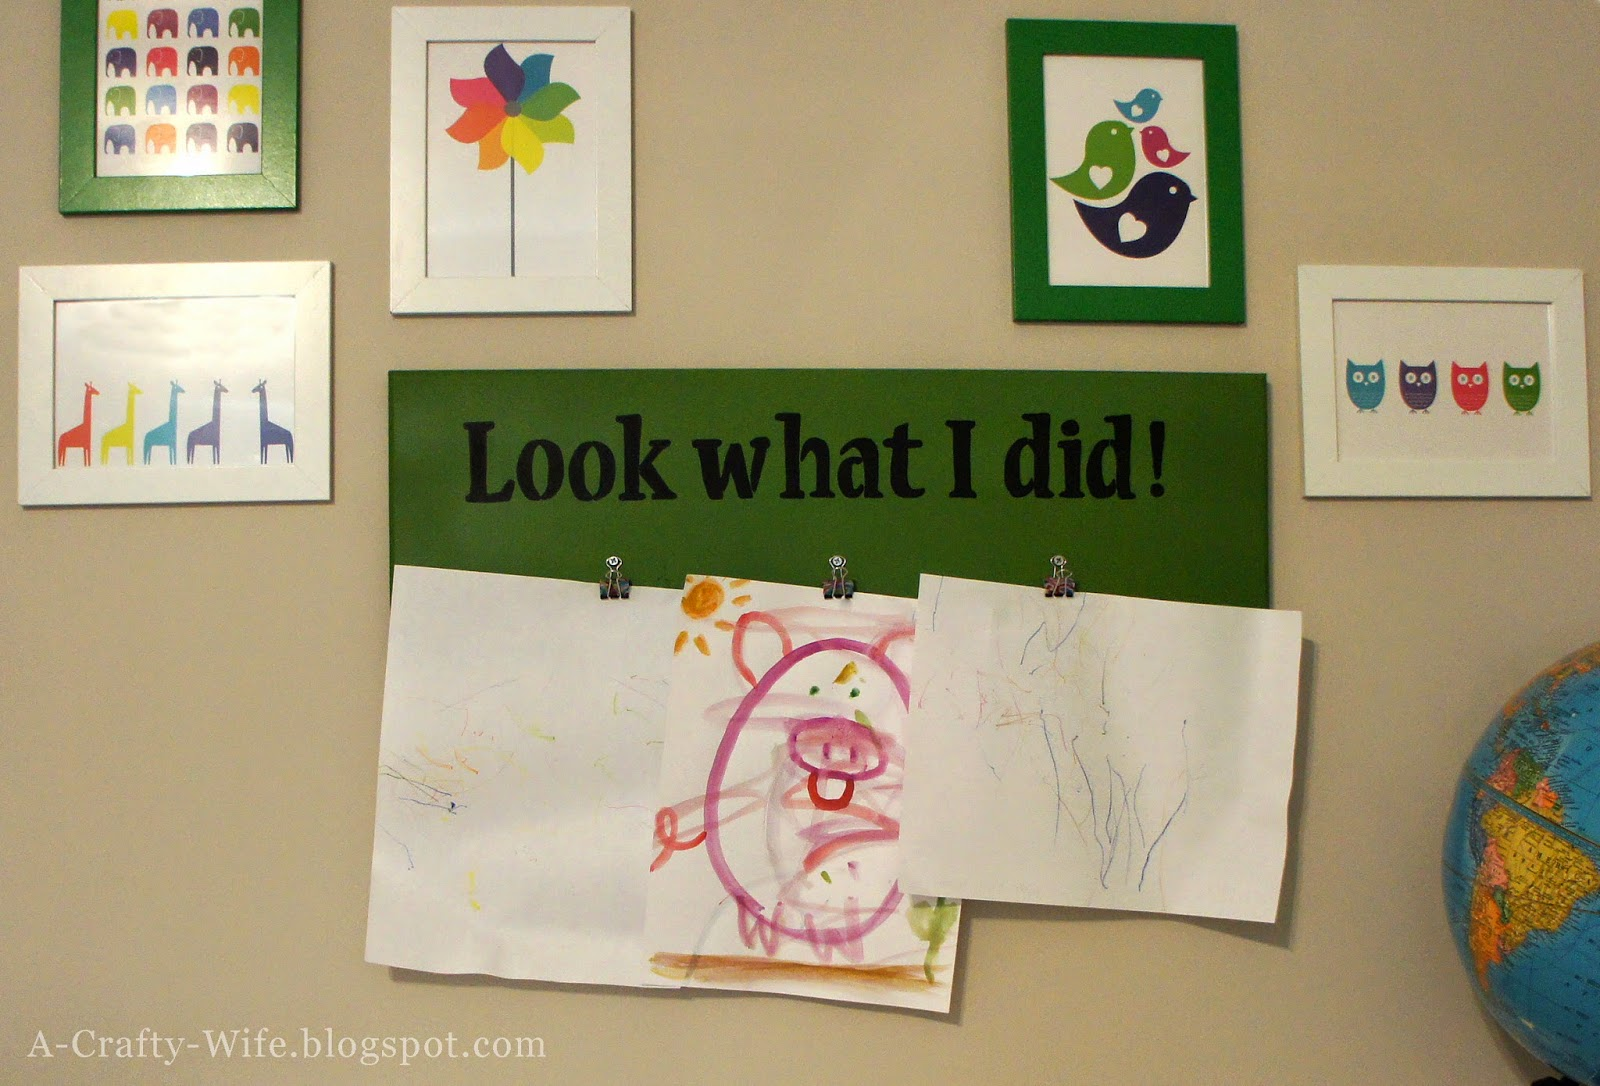 Make your own 'Look What I Did!' brag board for kids' art | A Crafty Wife